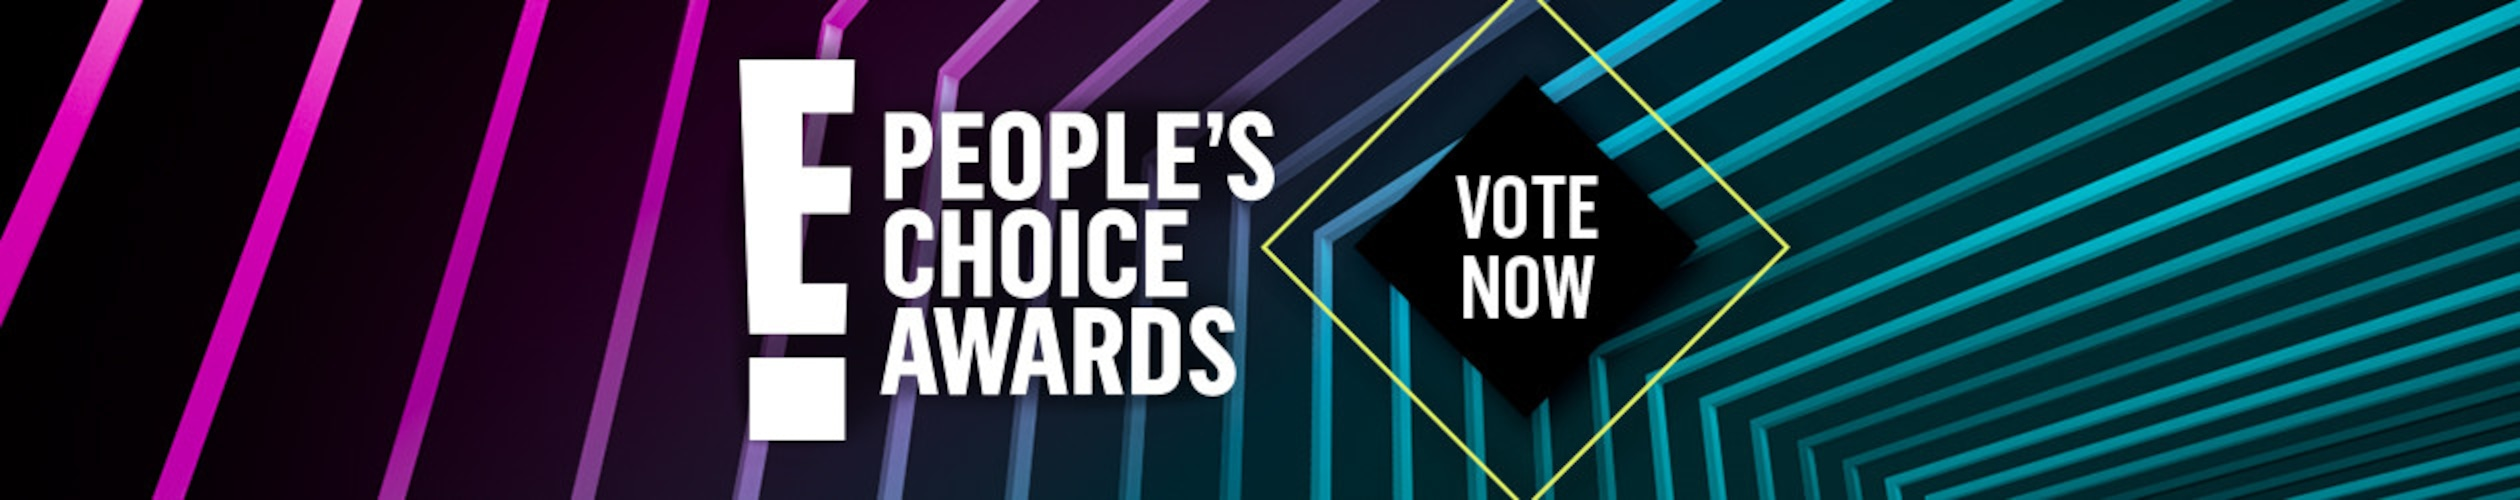 People's Choice Awards Vote Now Tune-In Banner, PCAs